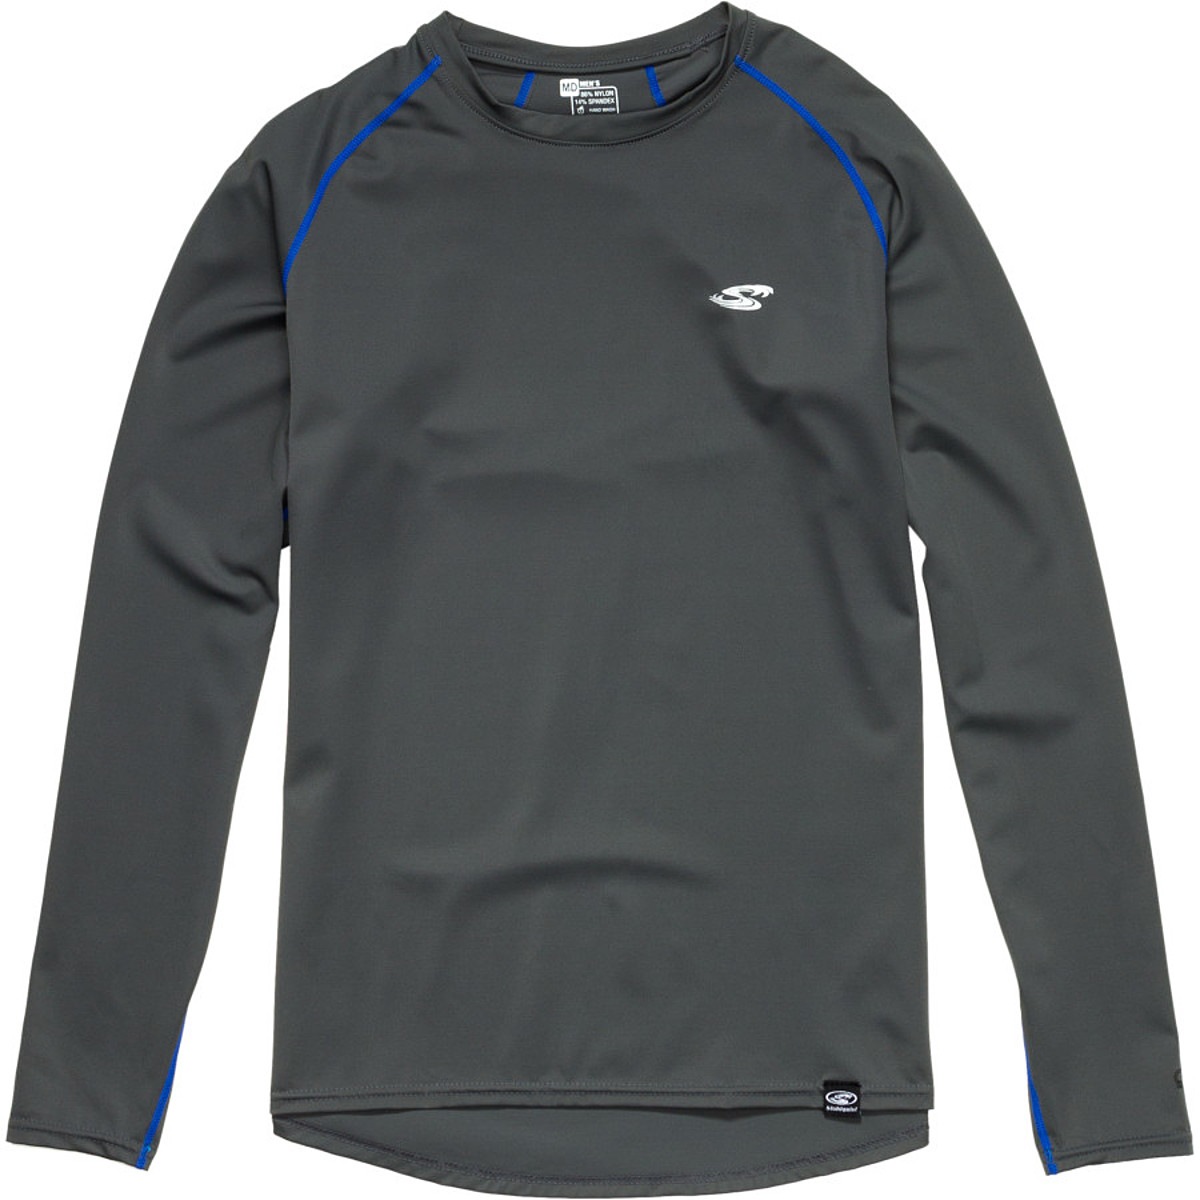 Stohlquist Loose Fit Rashguard